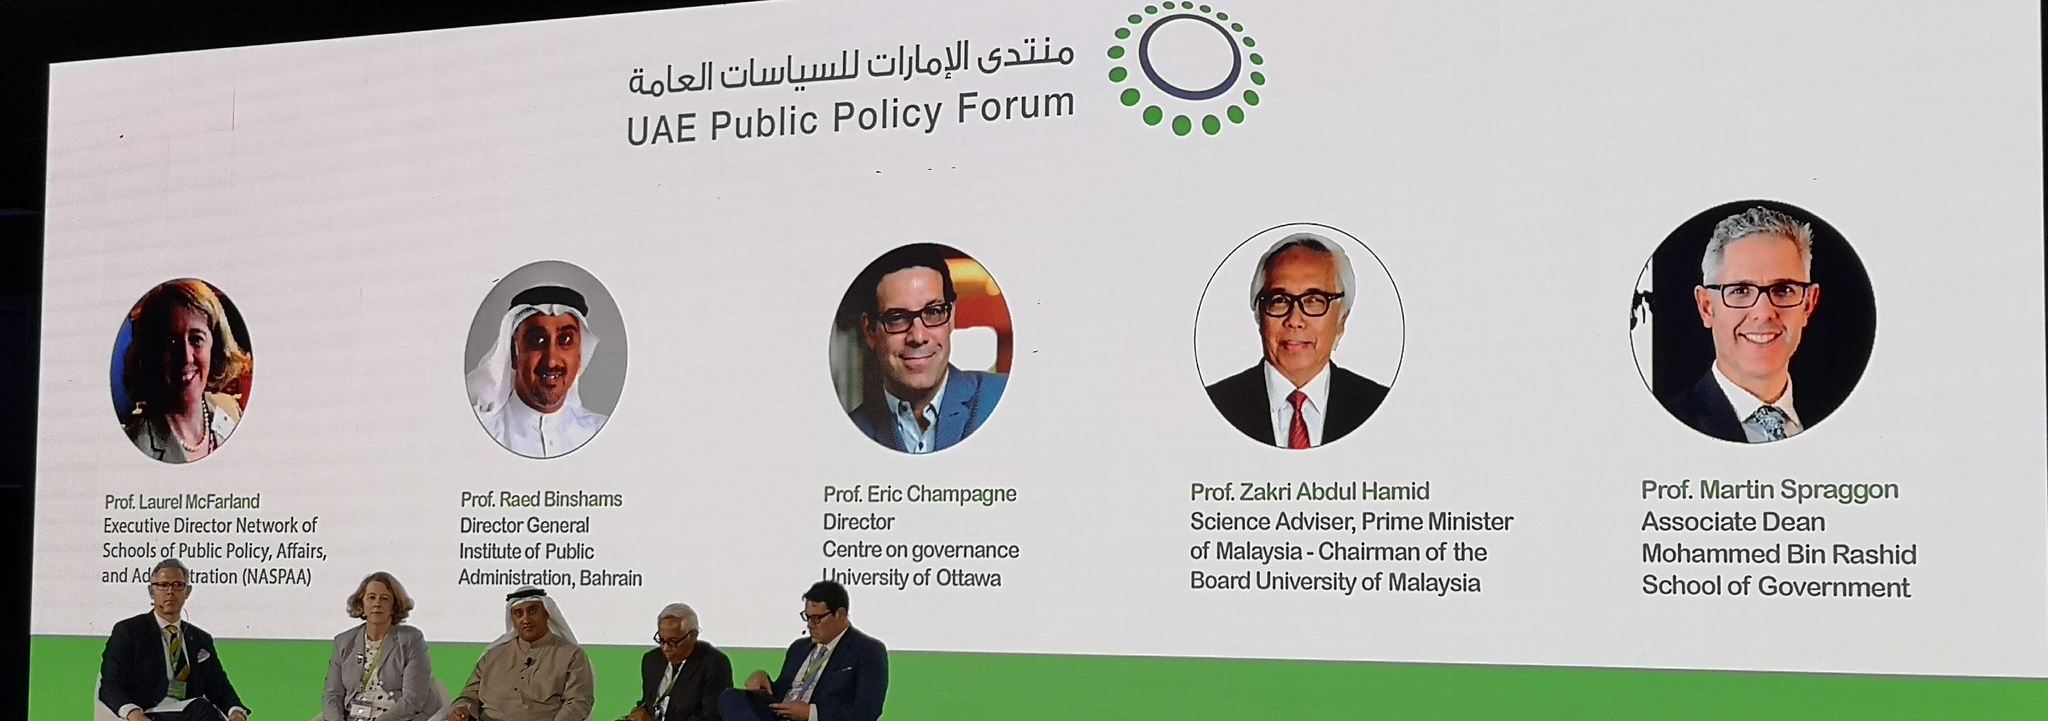 Panelists for the UAE Public Policy Forum